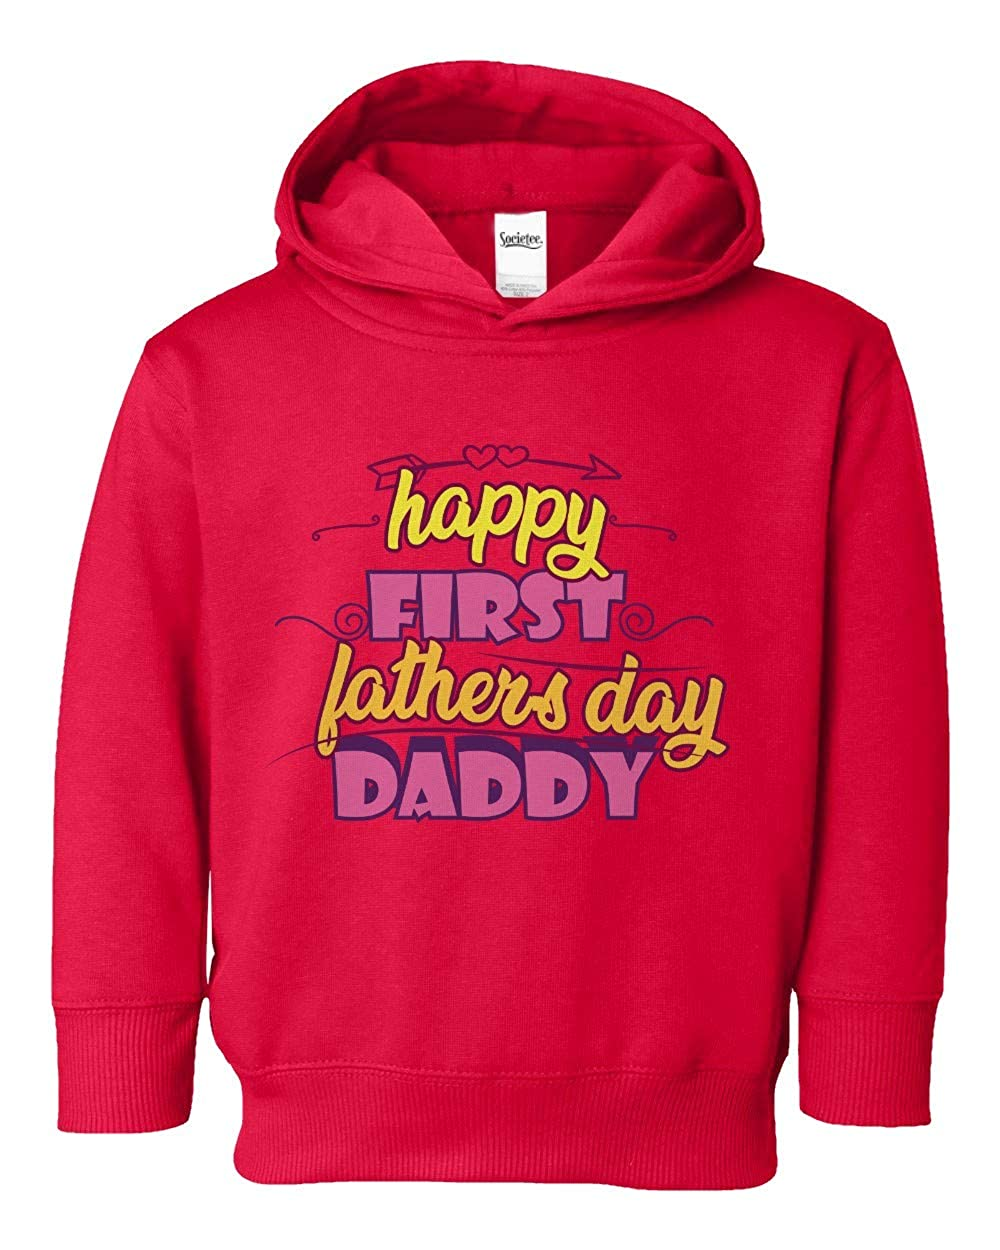 Societee Happy First Fathers Day Cute Daddy Girls Boys Toddler Hooded Sweatshirt